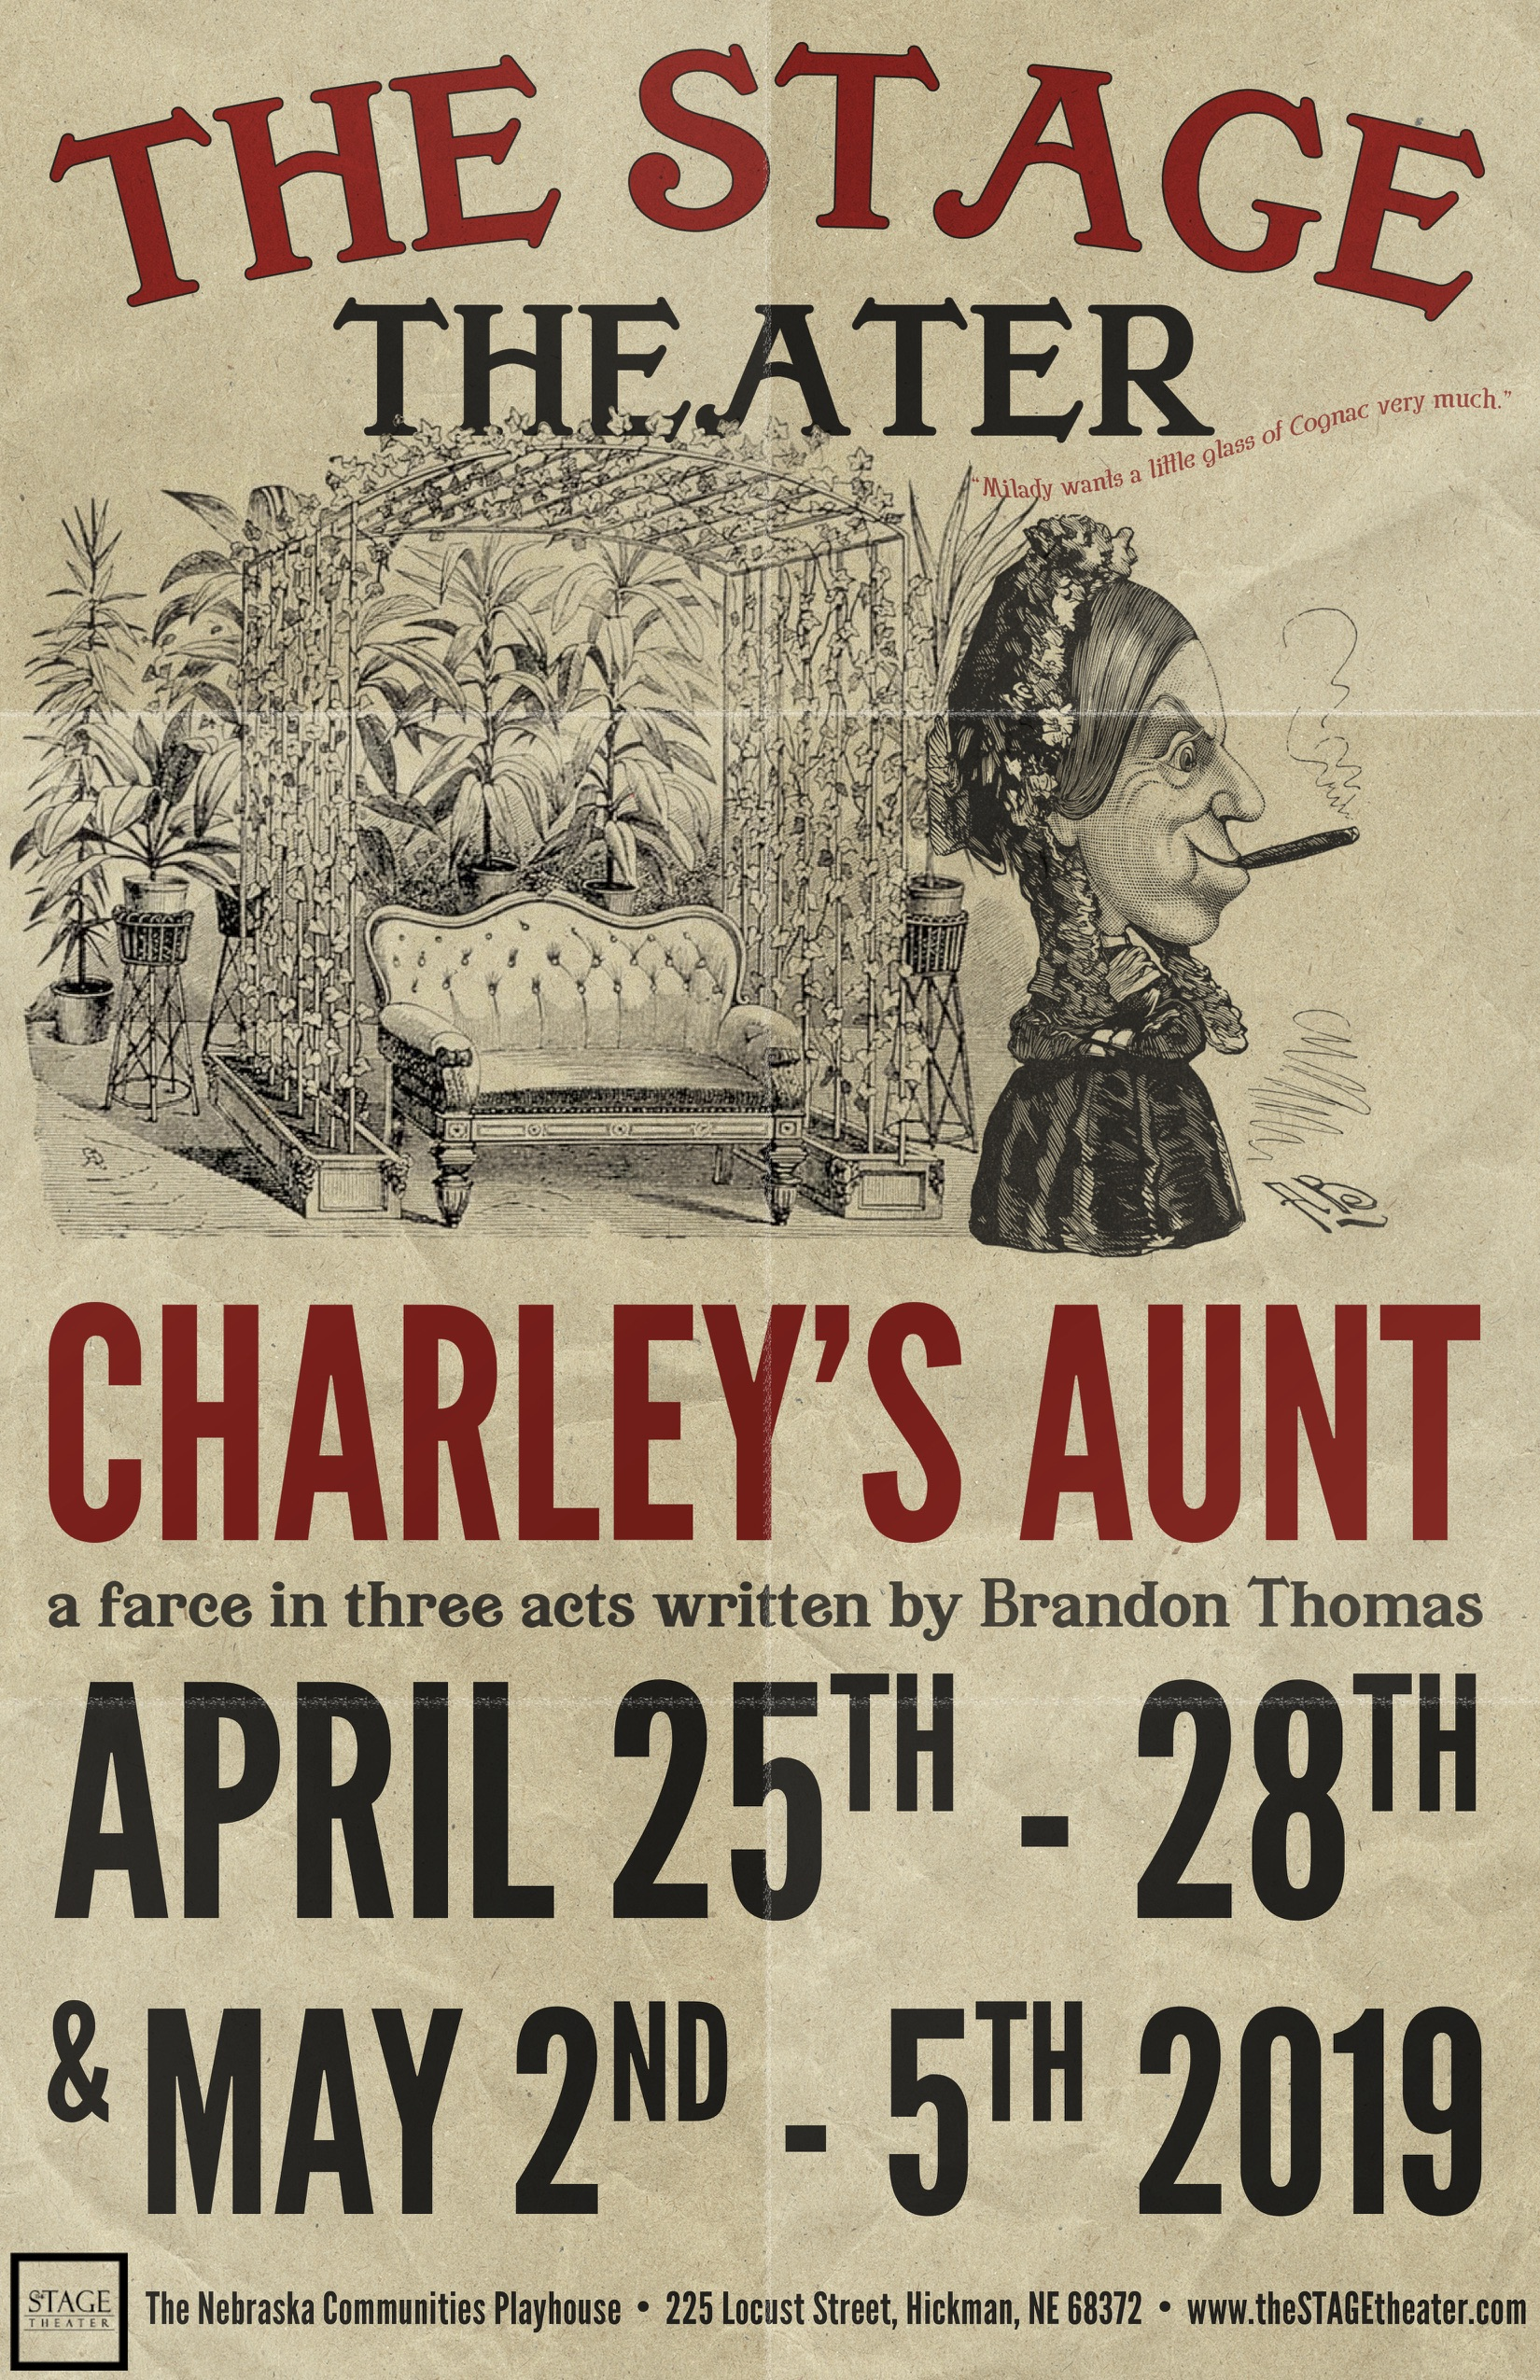 Charley's Aunt 11x17 PRESS